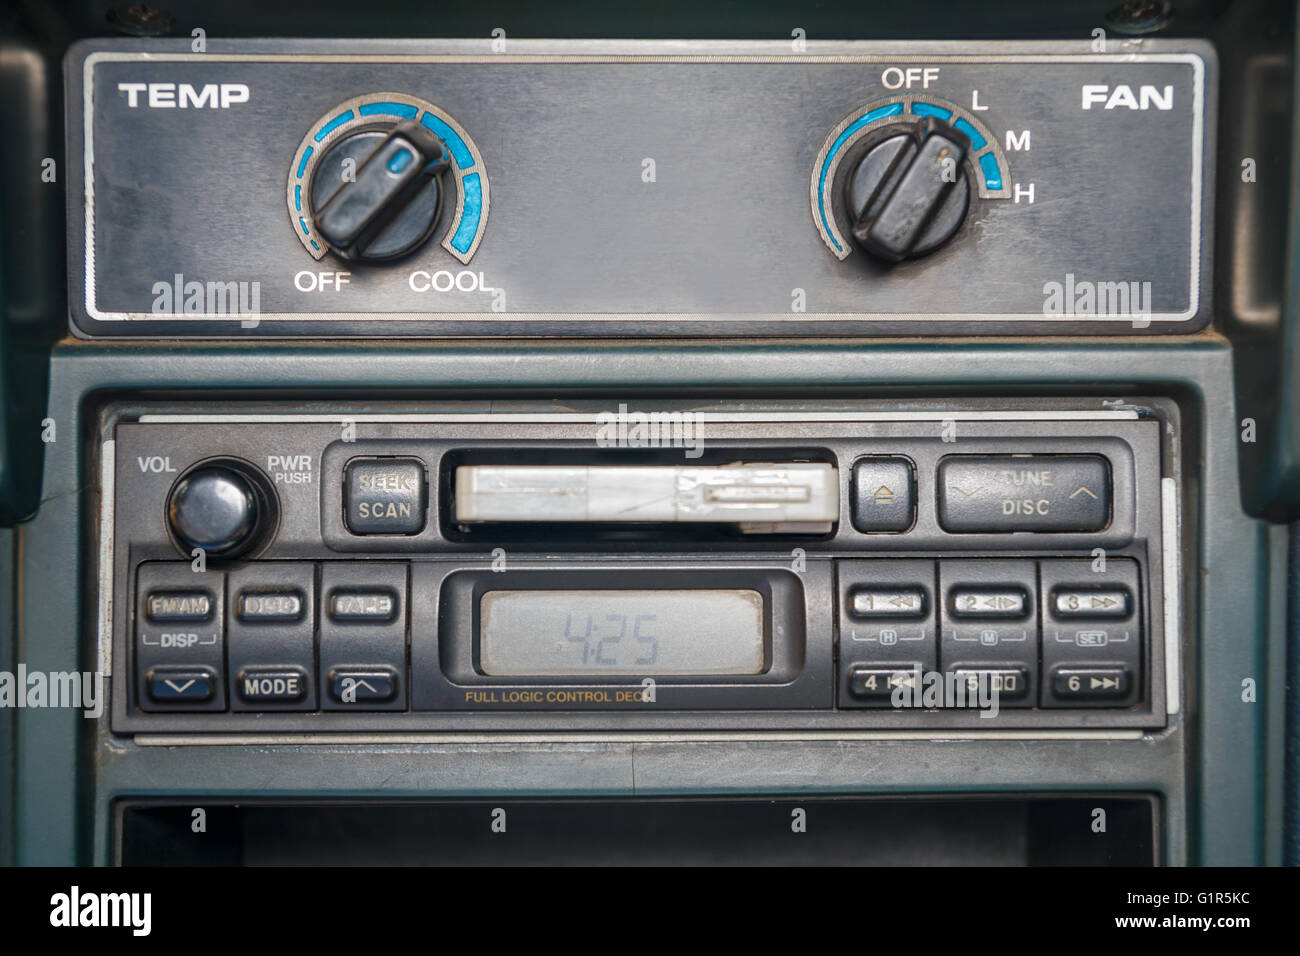 cassette tape player in car - Stock Image